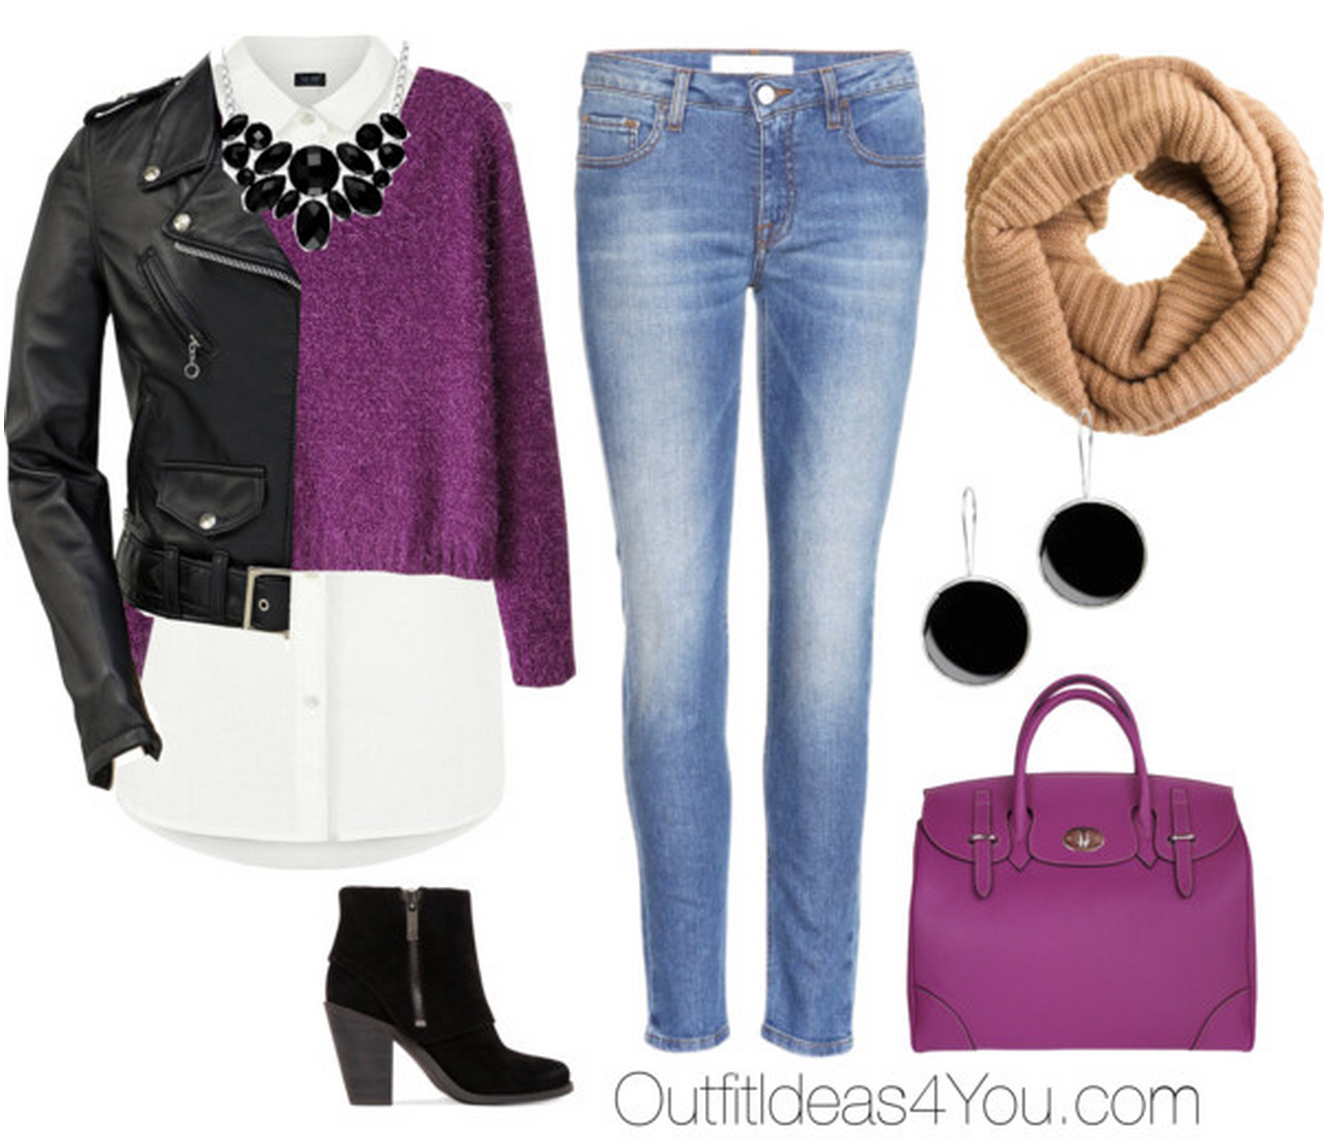 Get the Look: Black Leather Jacket With Purple Sweater | Leather ...